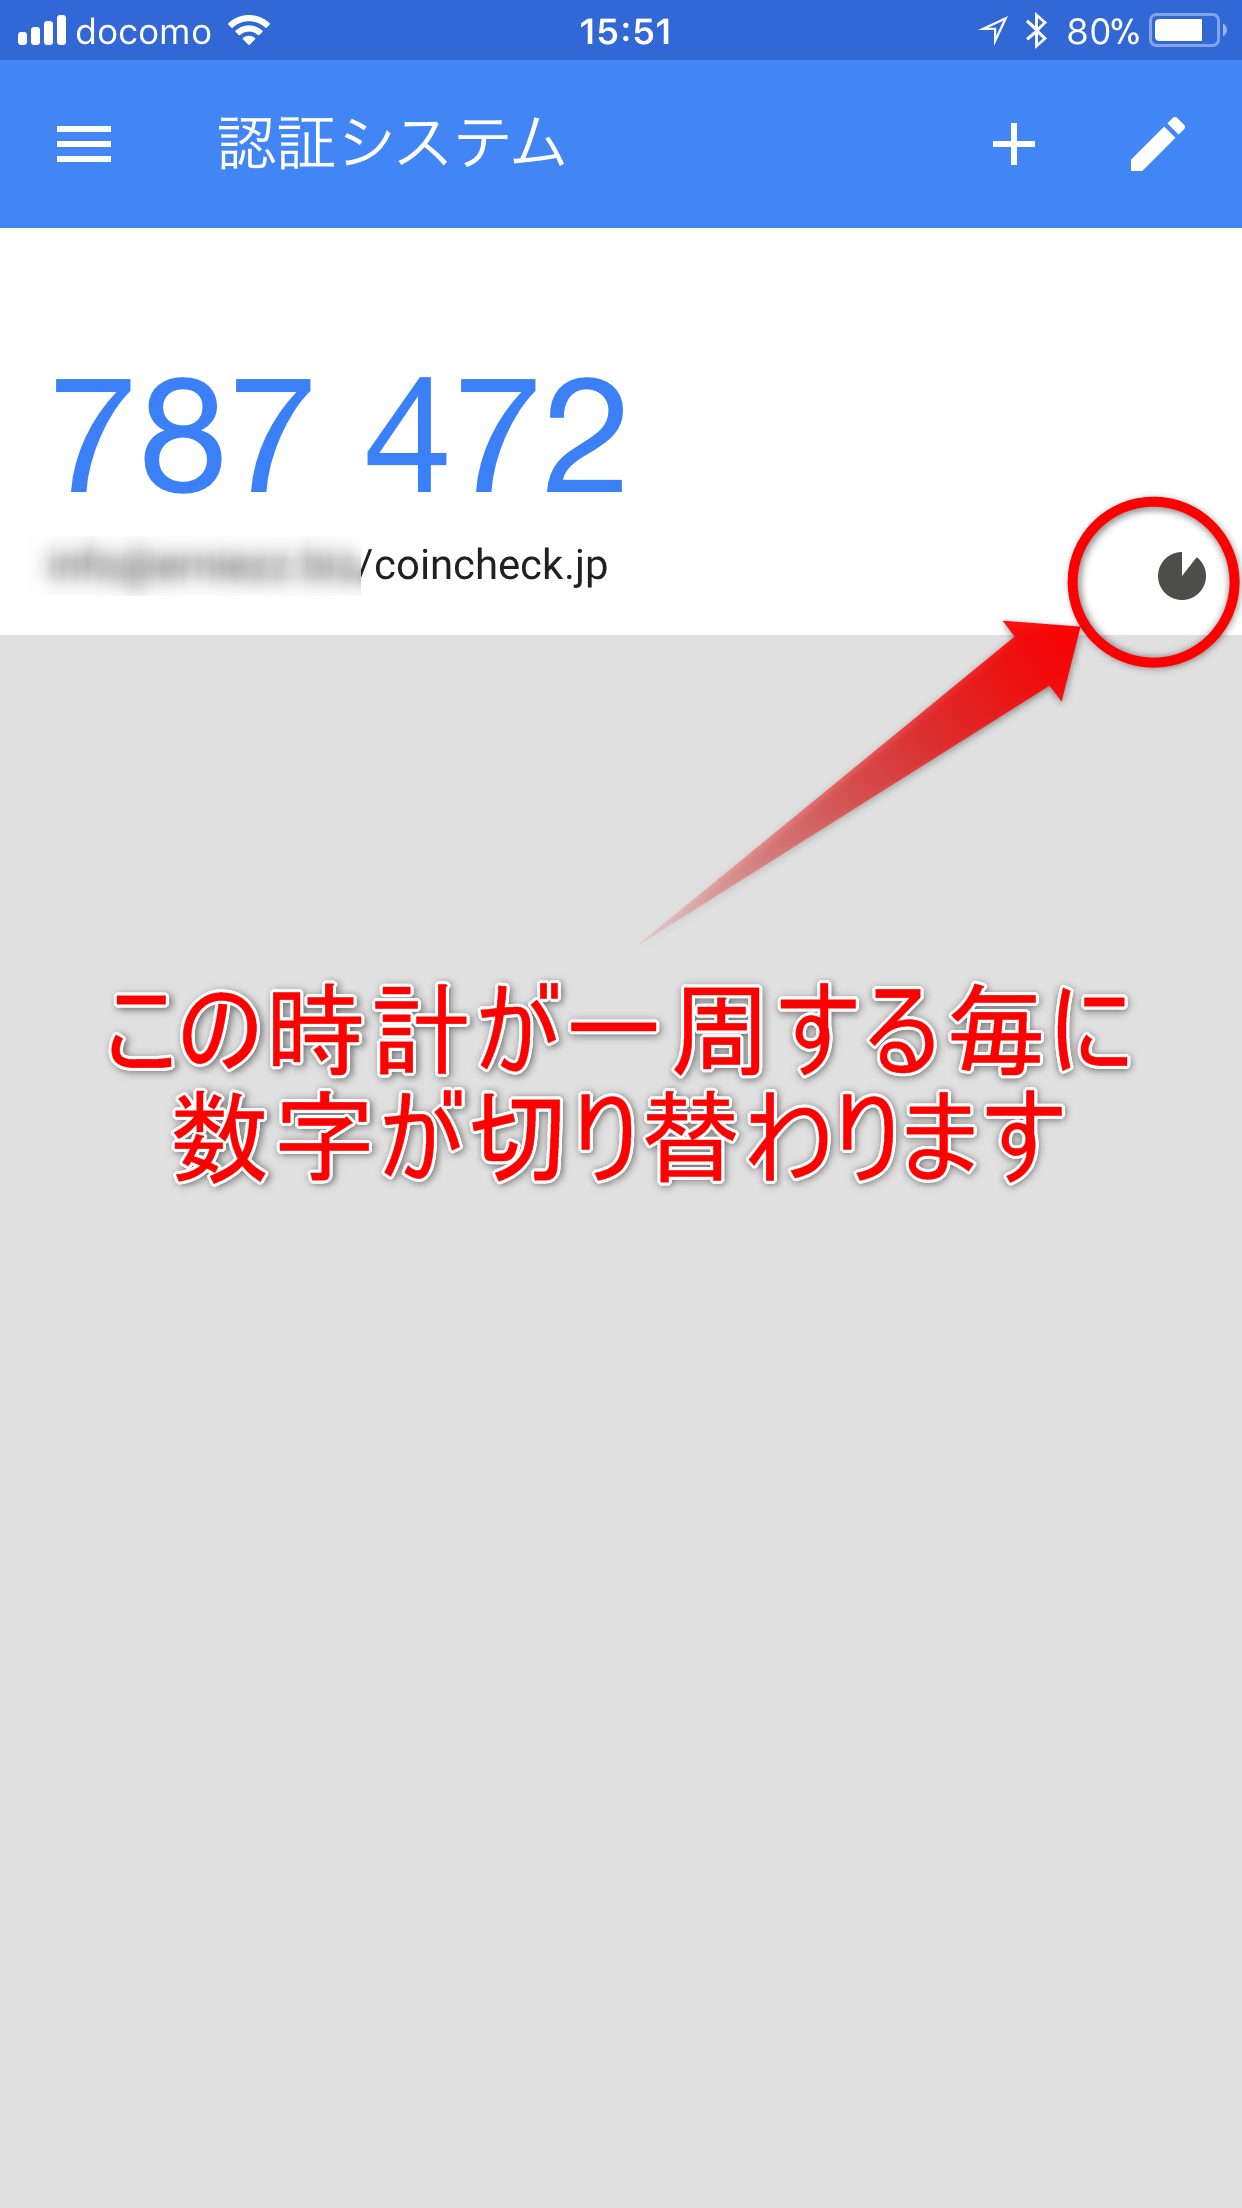 Google Authenticatorの認証画面